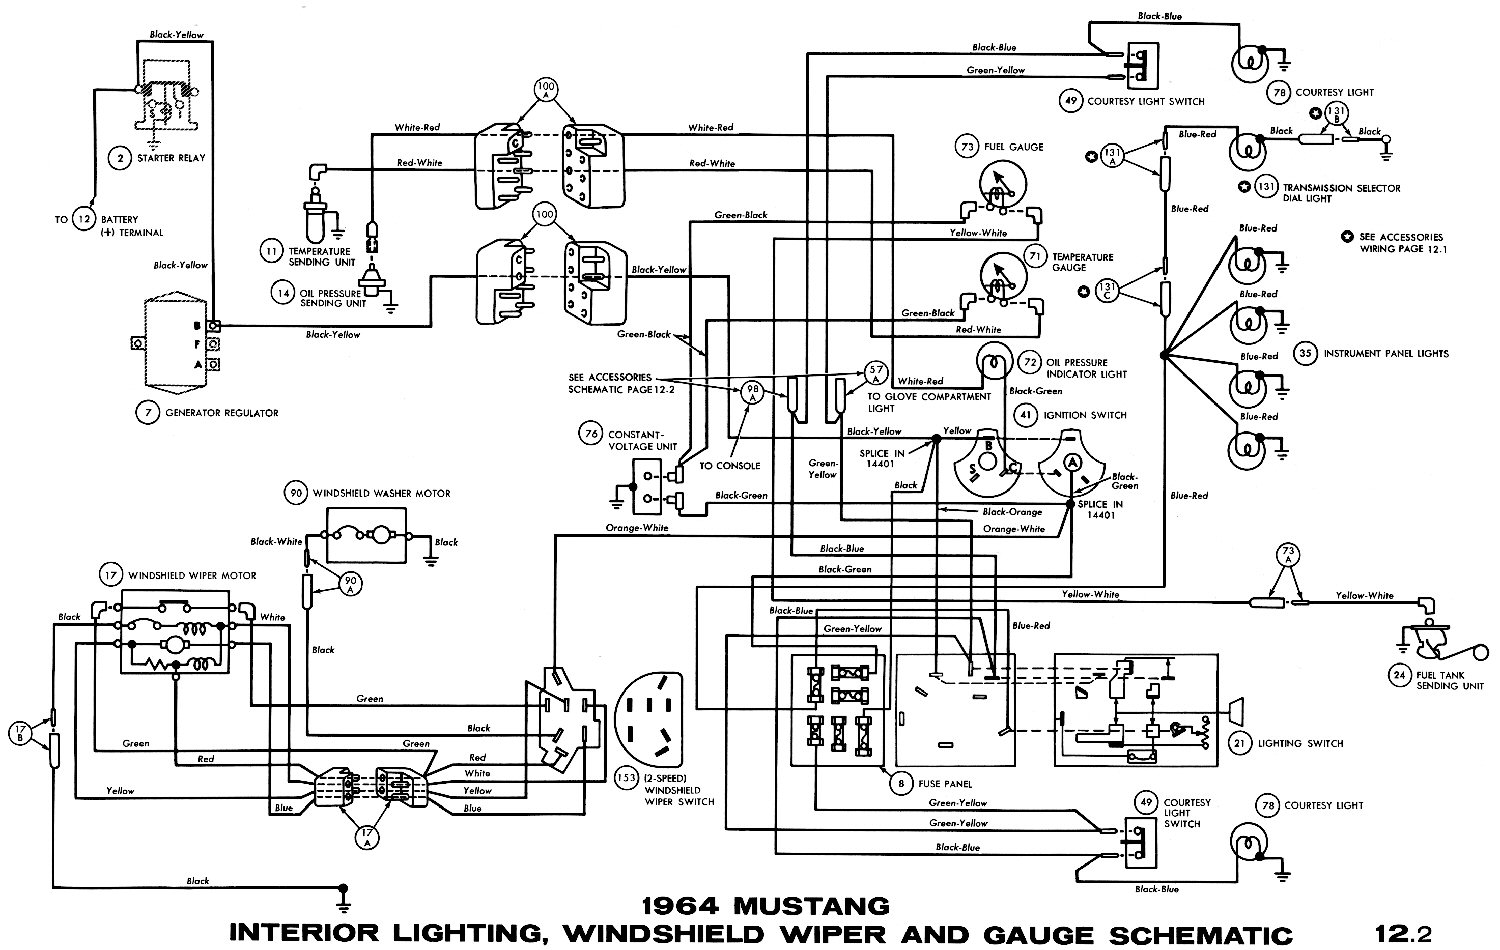 1964 Mustang Wiring Diagrams Average Joe Restoration Diagram For Light Switch Oil Pressure